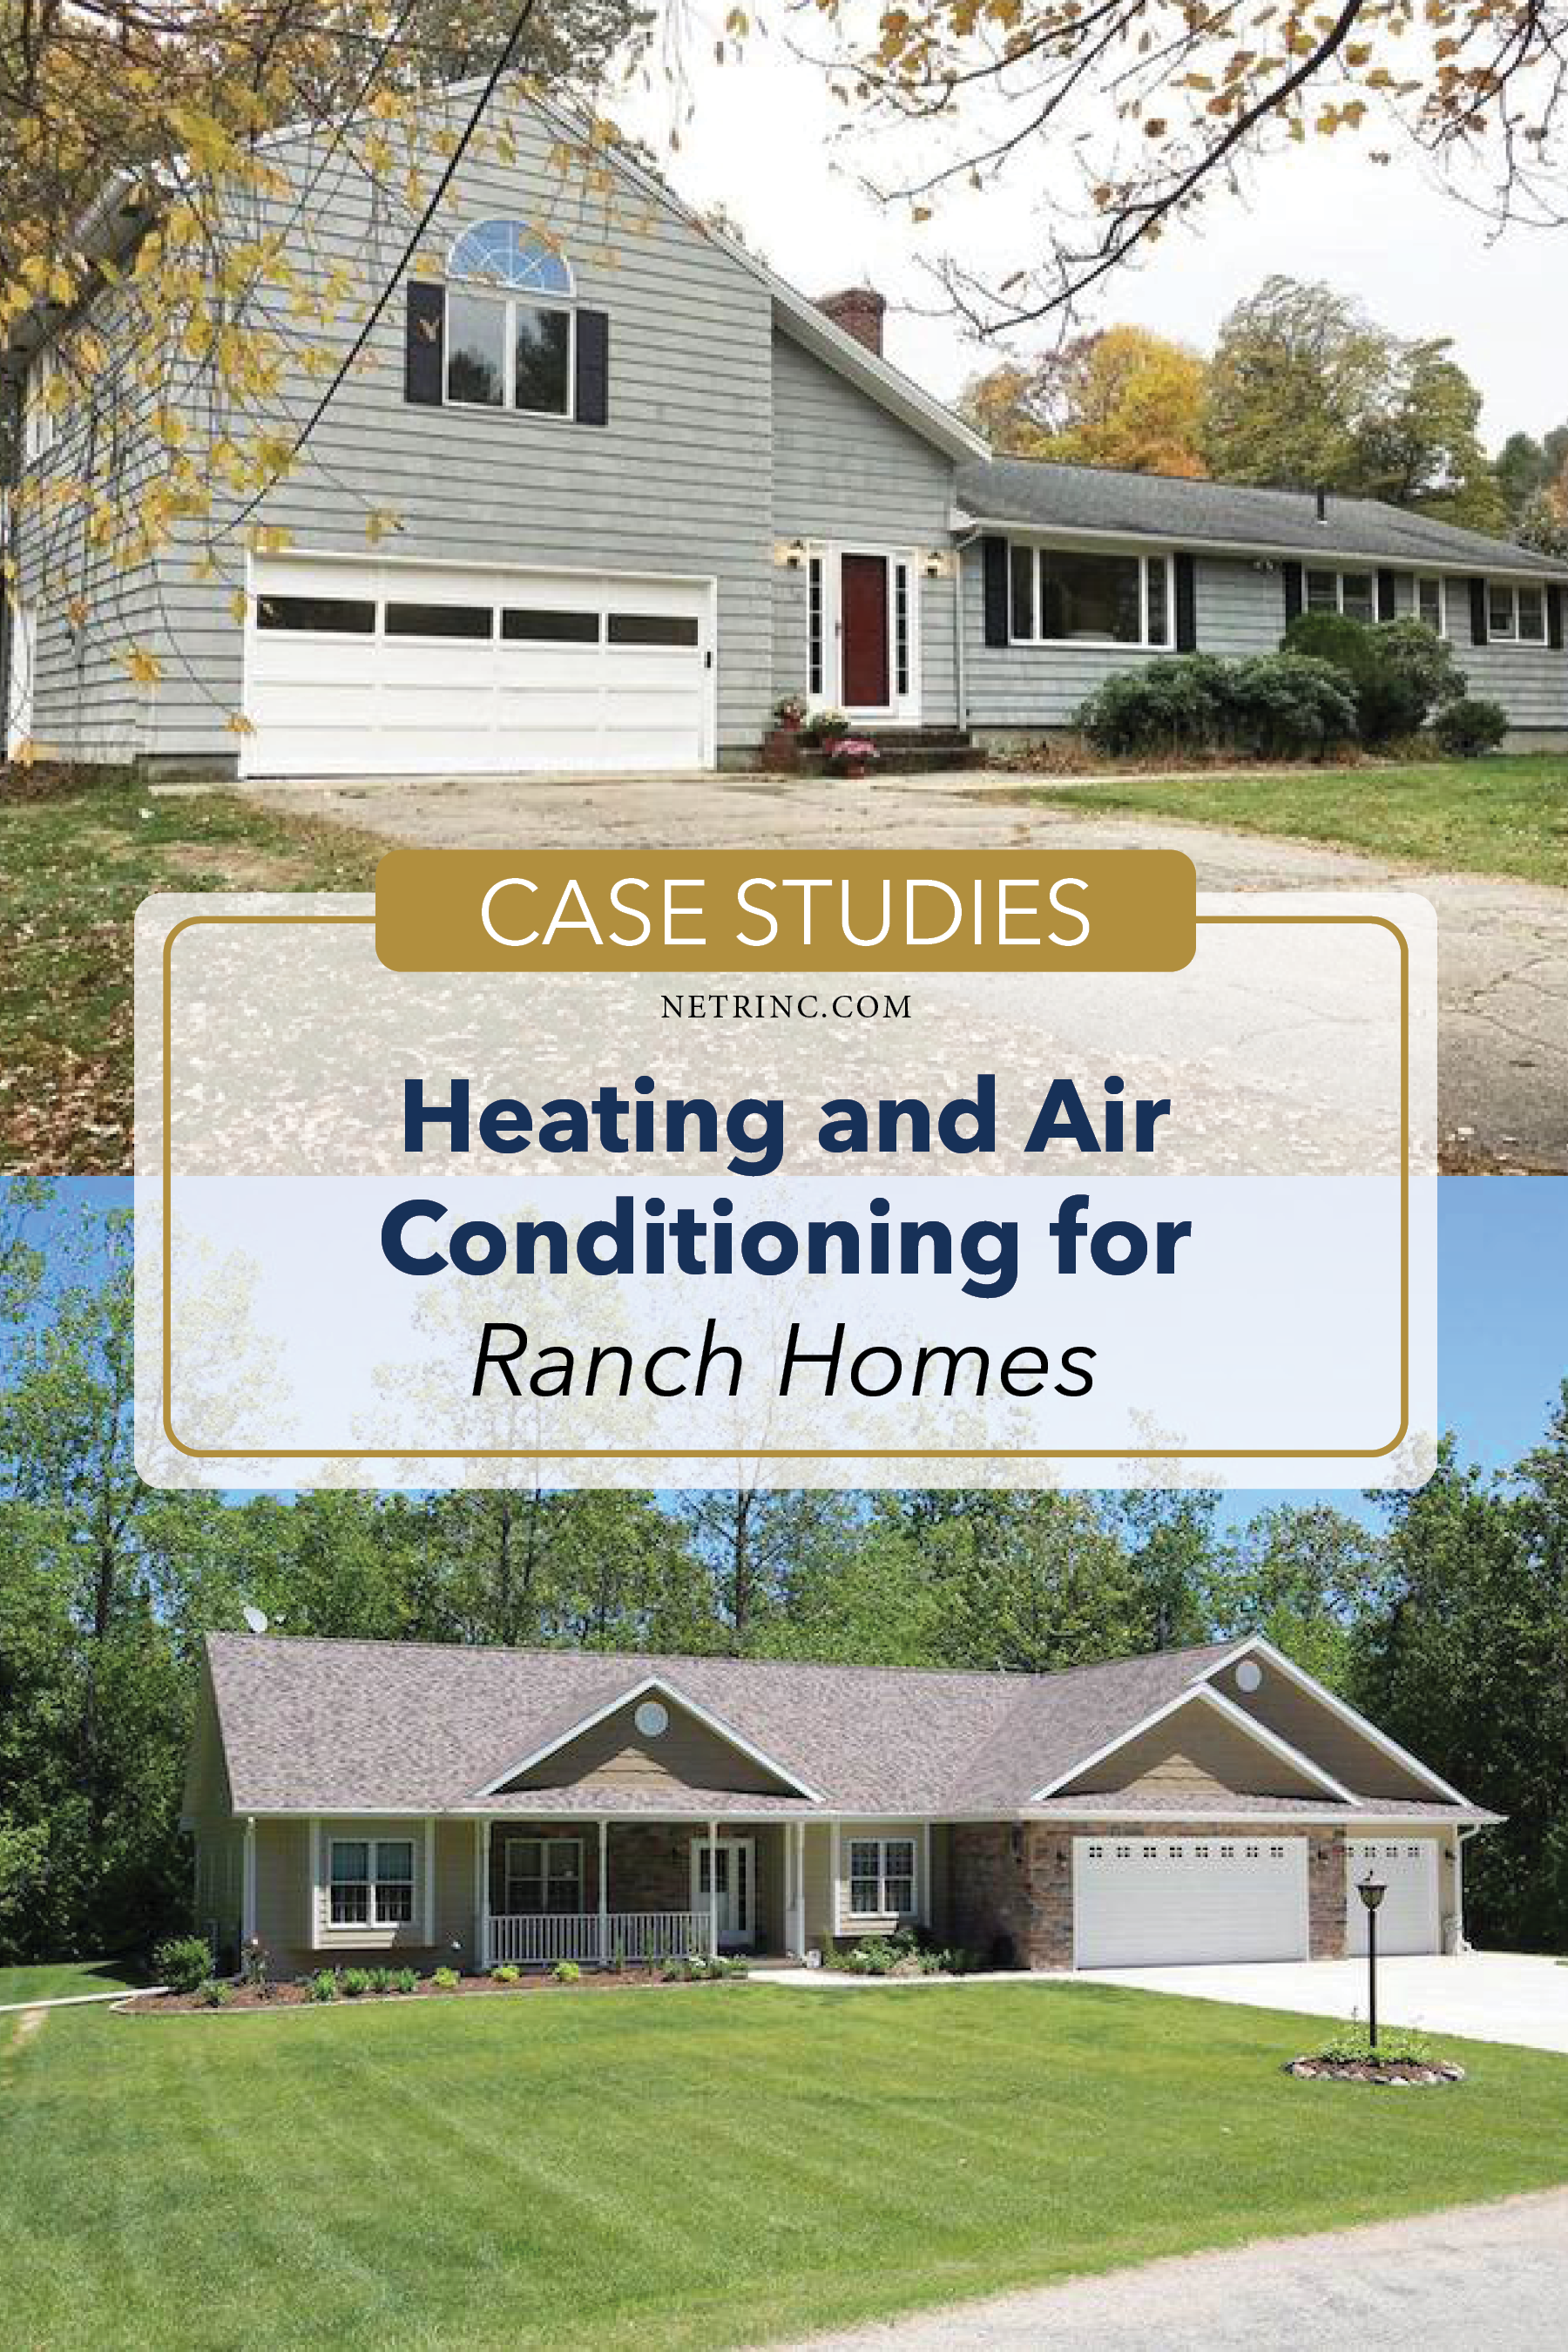 Heating and Air Conditioning for Ranch Homes in 2020